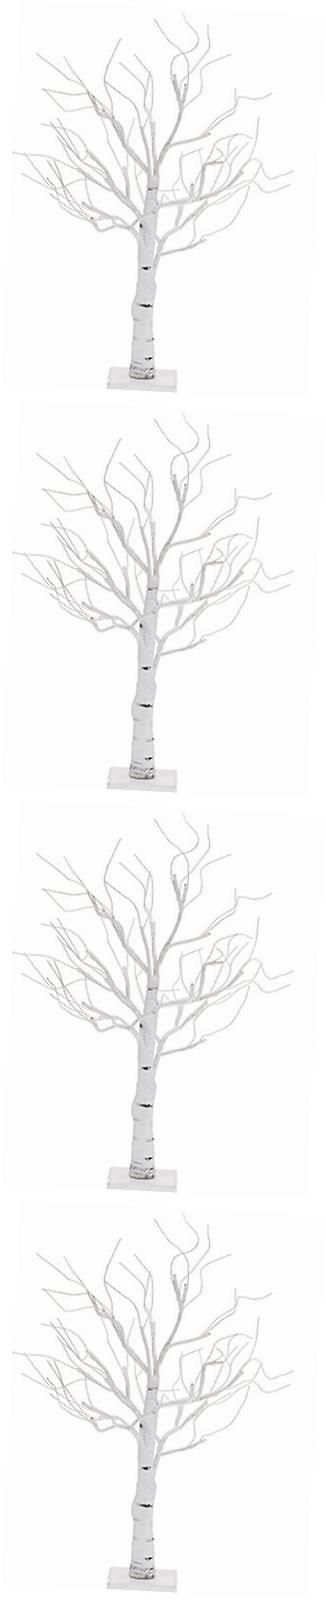 Artificial Christmas Trees 117414: Twiggy White Birch Poseable Leafless Tree Small With 24 Warm White Led Lights -> BUY IT NOW ONLY: $49.97 on eBay!